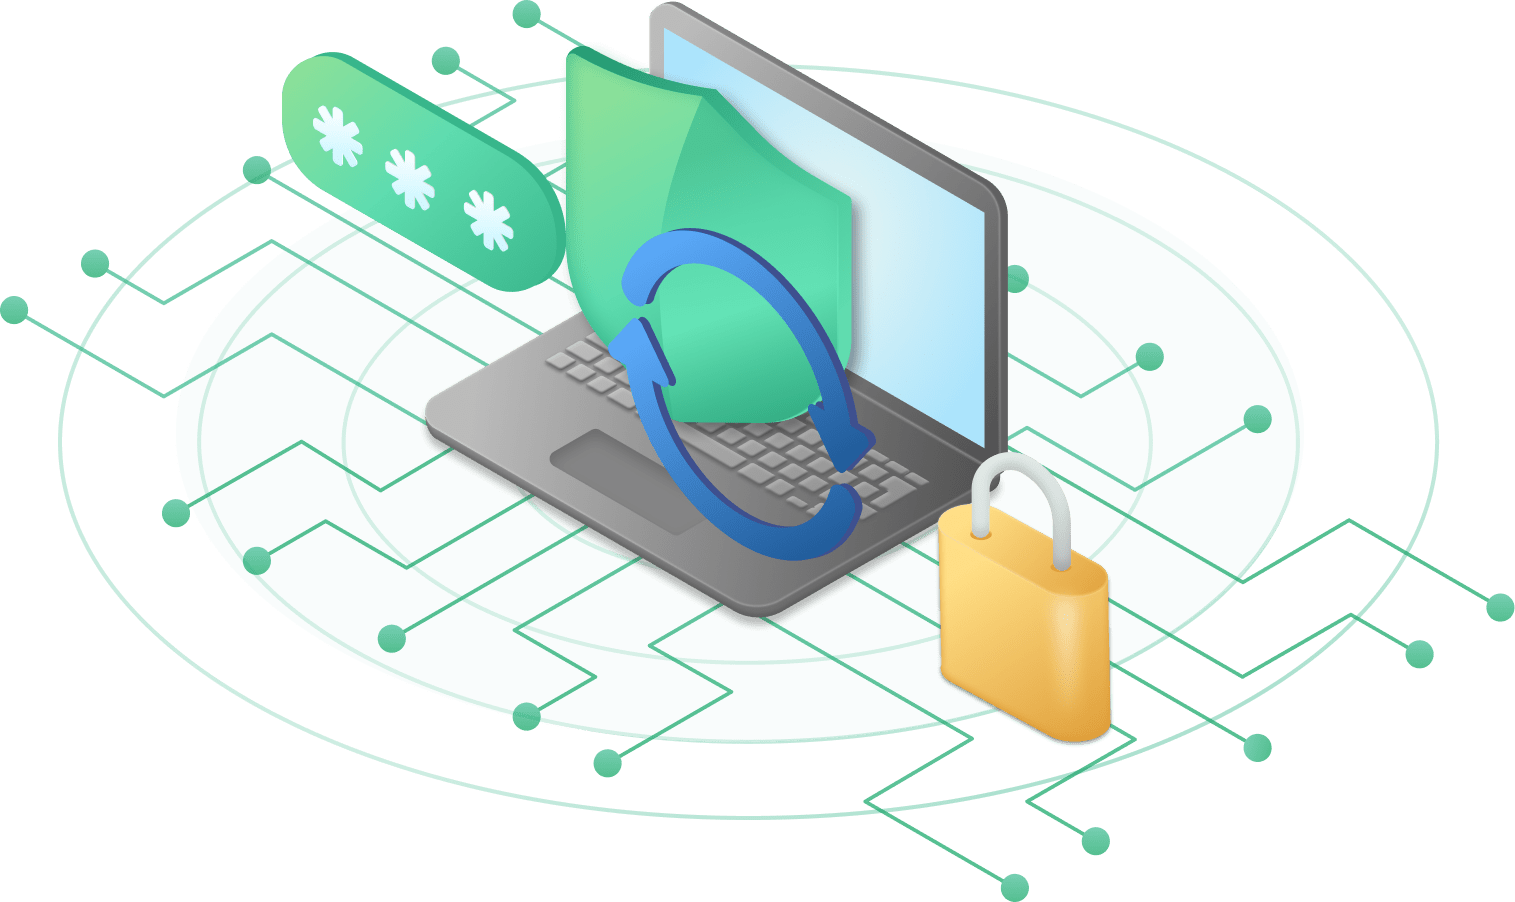 Illustration that represents password rotation, protection and security